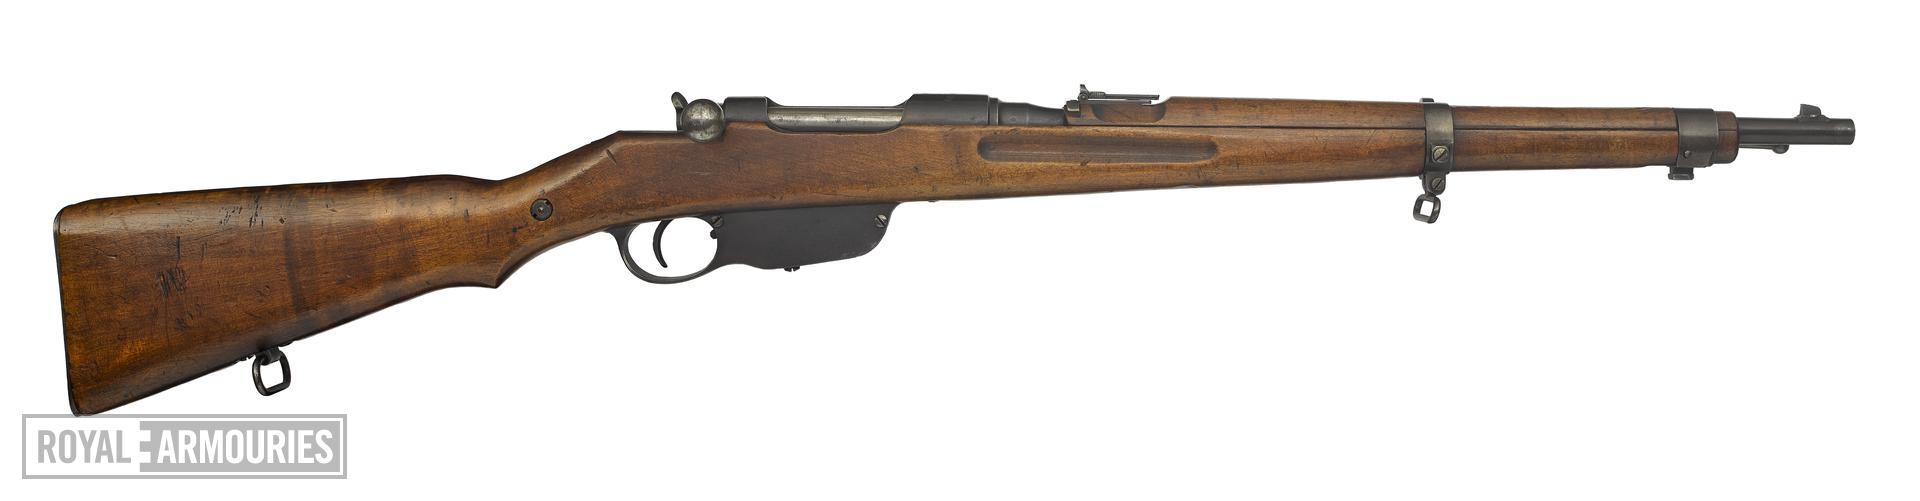 Stutzen Mannlicher Model 1895 Stutzen centrefire bolt action rifle, Austria, about 1895, marked with 'Budapest'.